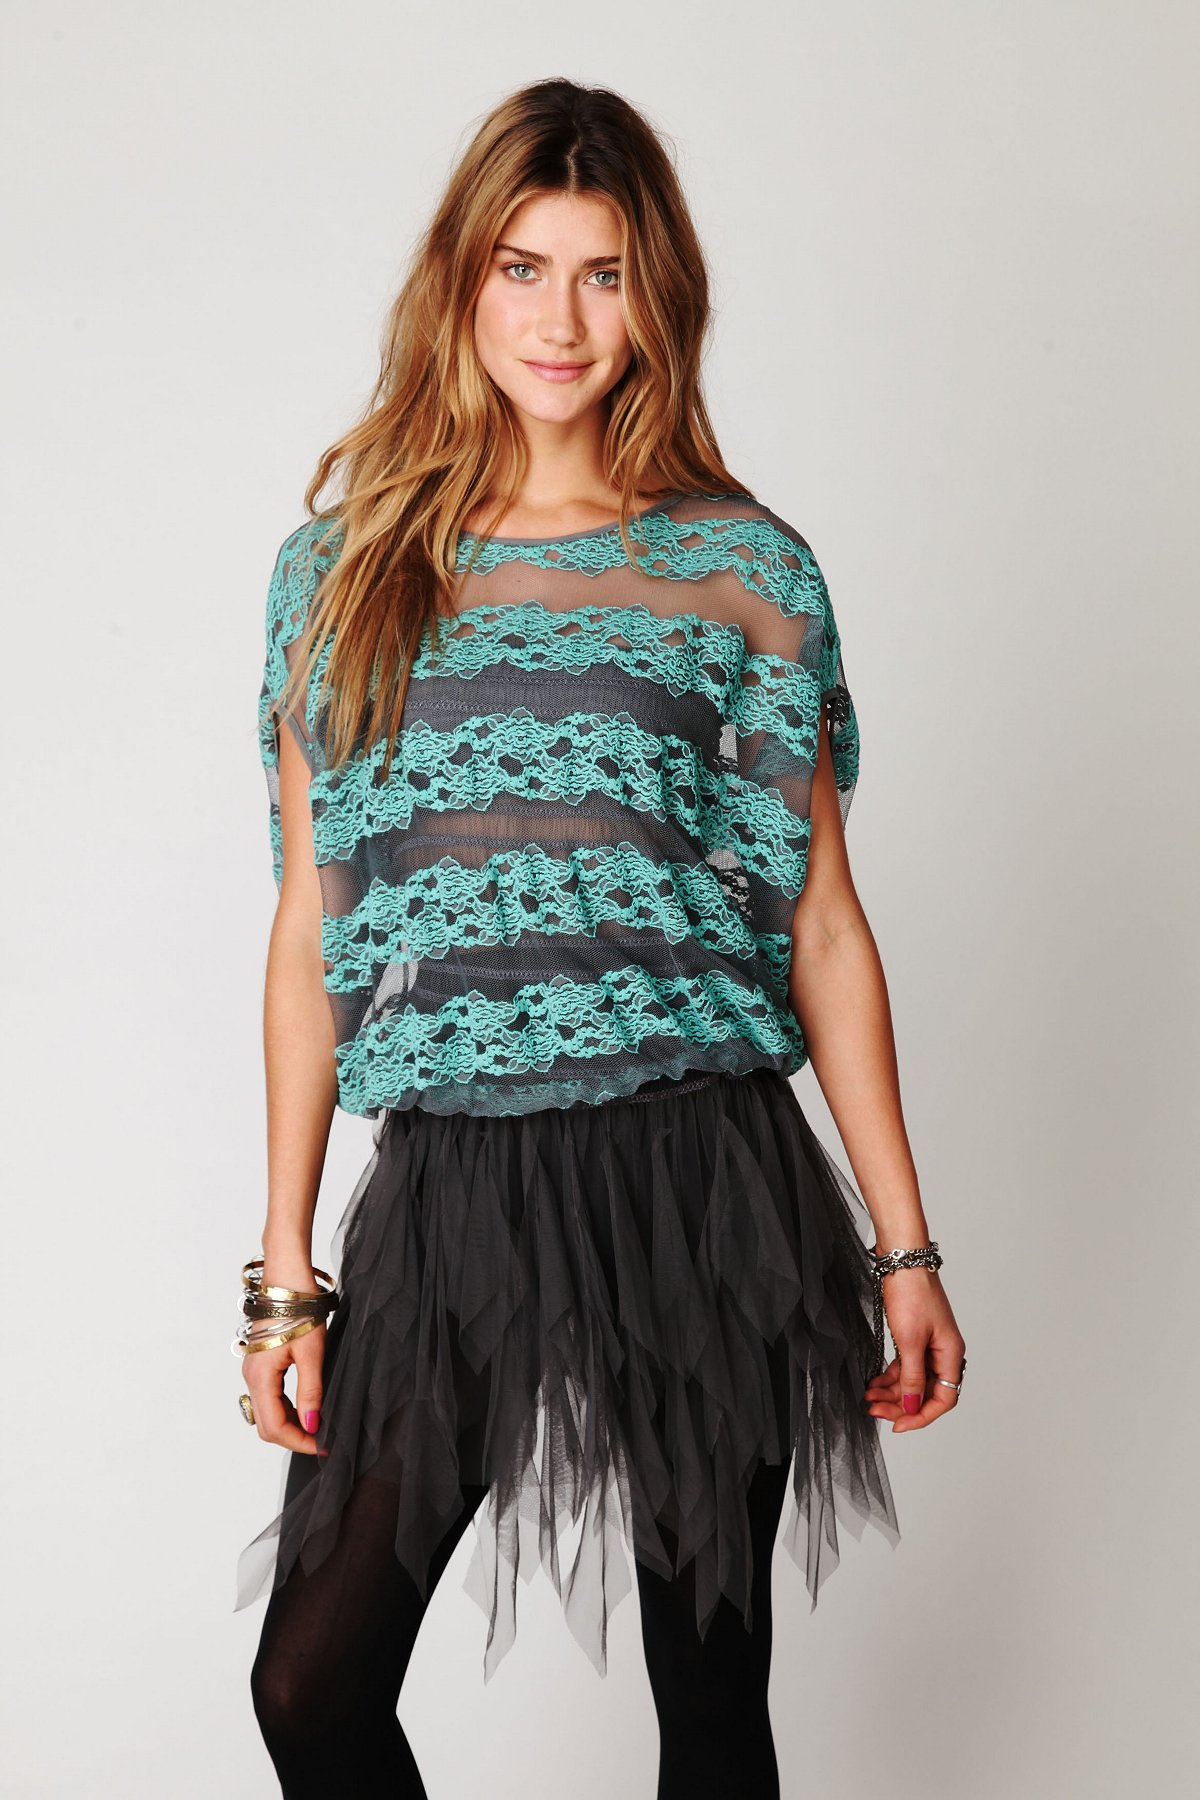 County Fair Banded Bottom Lace Top